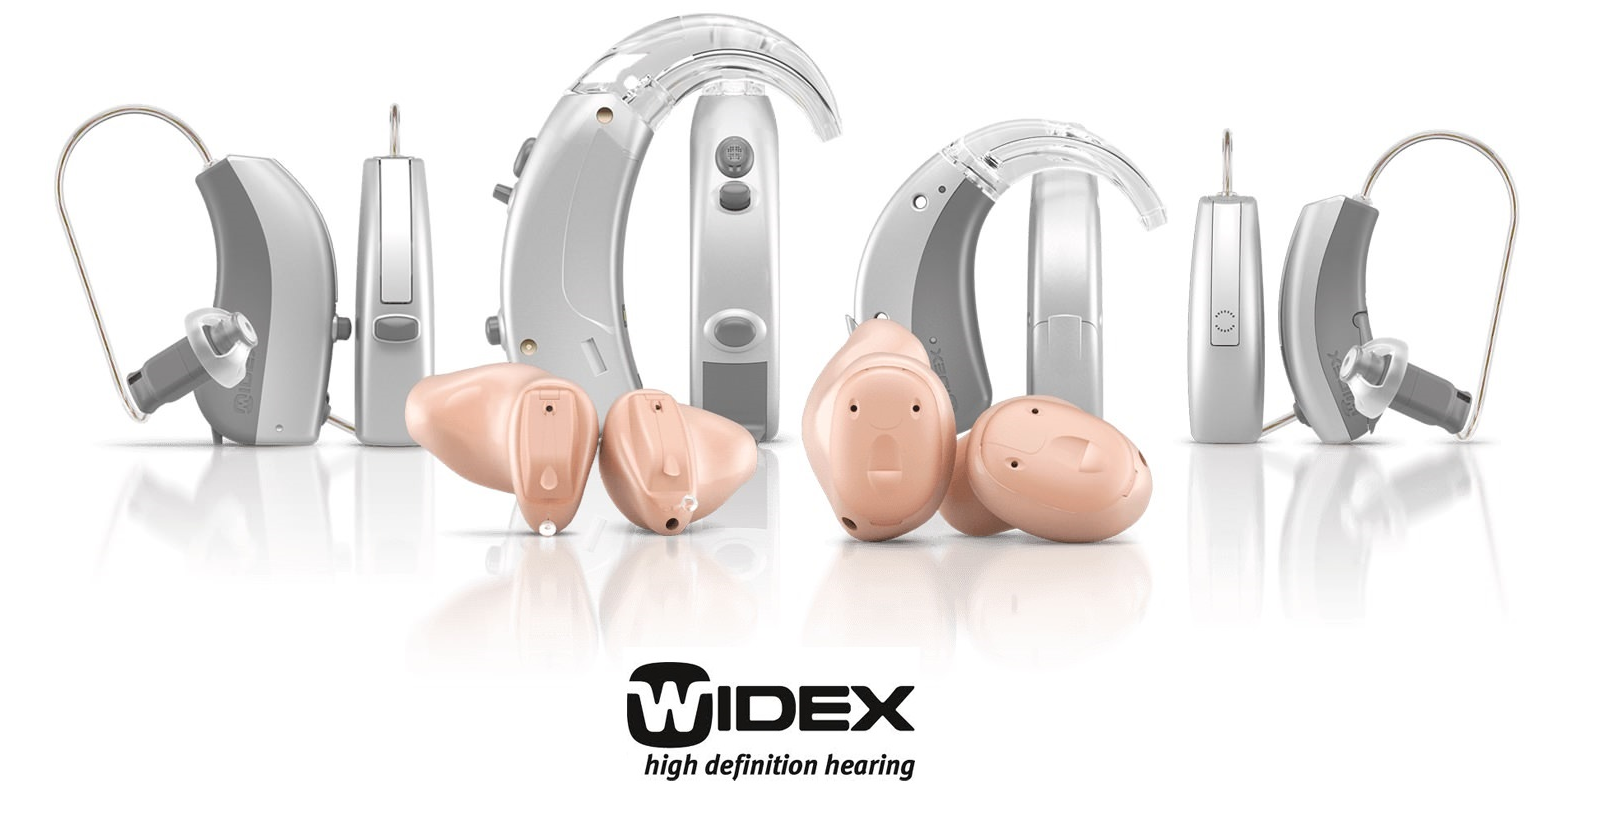 Widex Hearing Aids - All Prices Shown - Save up to 40%